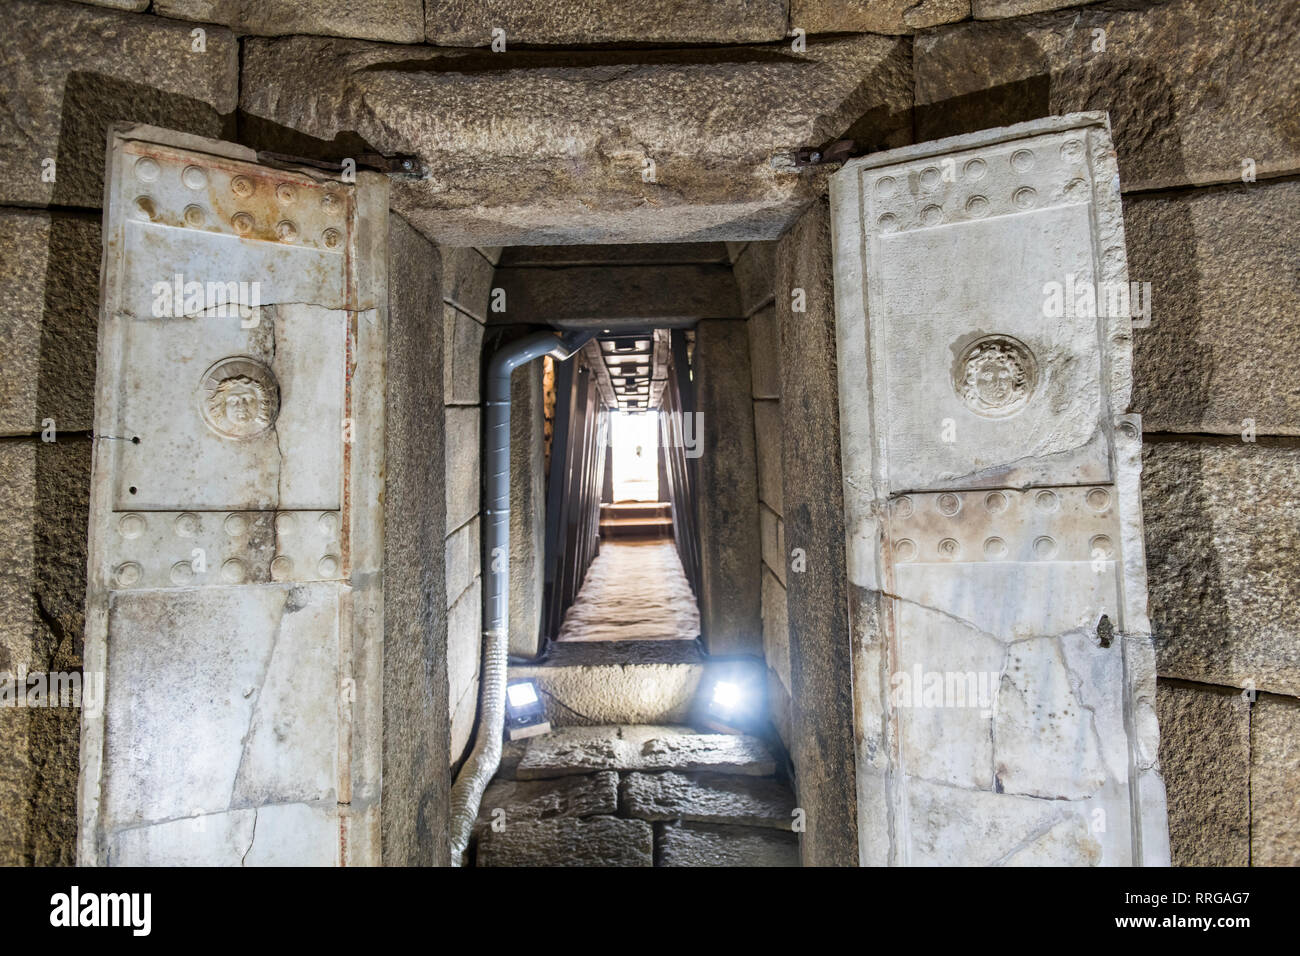 Thracian tomb in the Valley of the Thracian Rulers, Kazanak valley, Kazanlak, Bulgaria, Europe - Stock Image